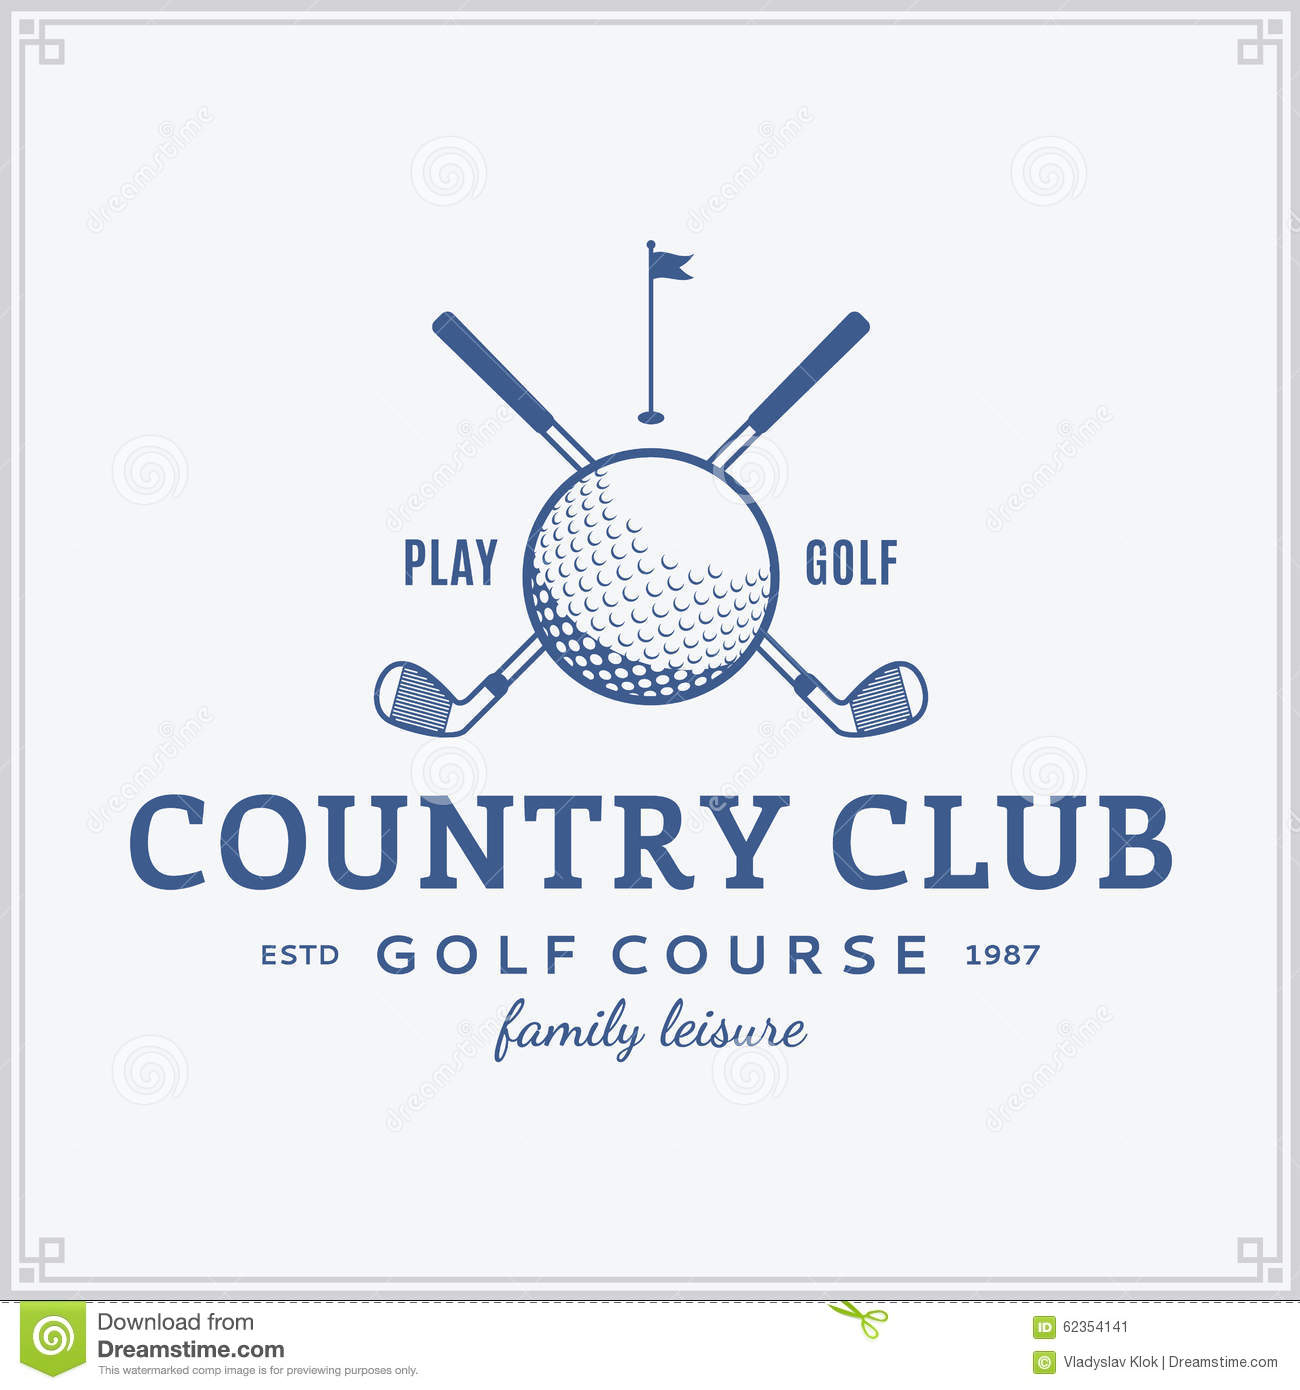 Golf Country Club Logo Template Stock Vector - Image: 62354141